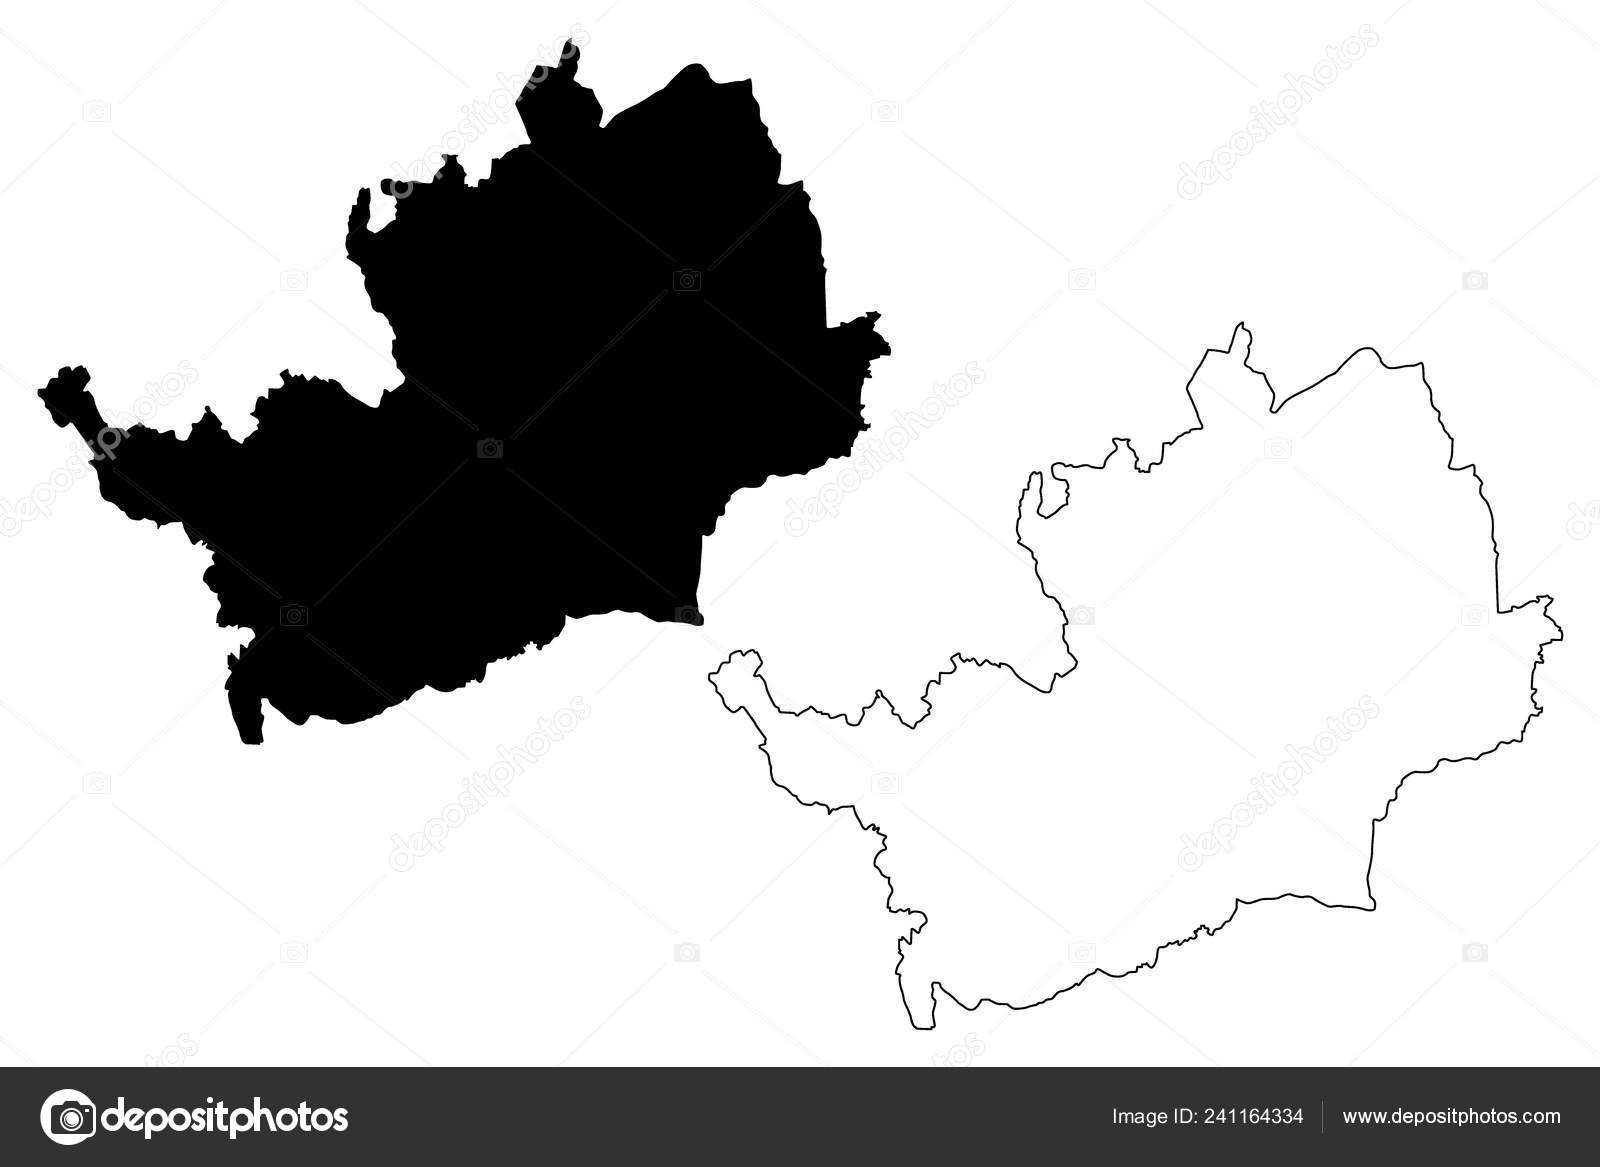 Hertfordshire United Kingdom England Non Metropolitan County Shire on the kingdom of franks map, kingdom of england flag, kingdom of saudi arabia map, norman conquest of england map, kingdom of burgundy map, empire of japan map, wars of the roses map, lincoln england map, kingdom of poland map, union of soviet socialist republics map, grand duchy of tuscany map, kingdom of denmark map, democratic republic of the congo map, confederate states of america map, kingdom of jordan map, anglo-saxon england map, khmer kingdom map, duchy of burgundy map, england and wales map, duchy of brittany map,